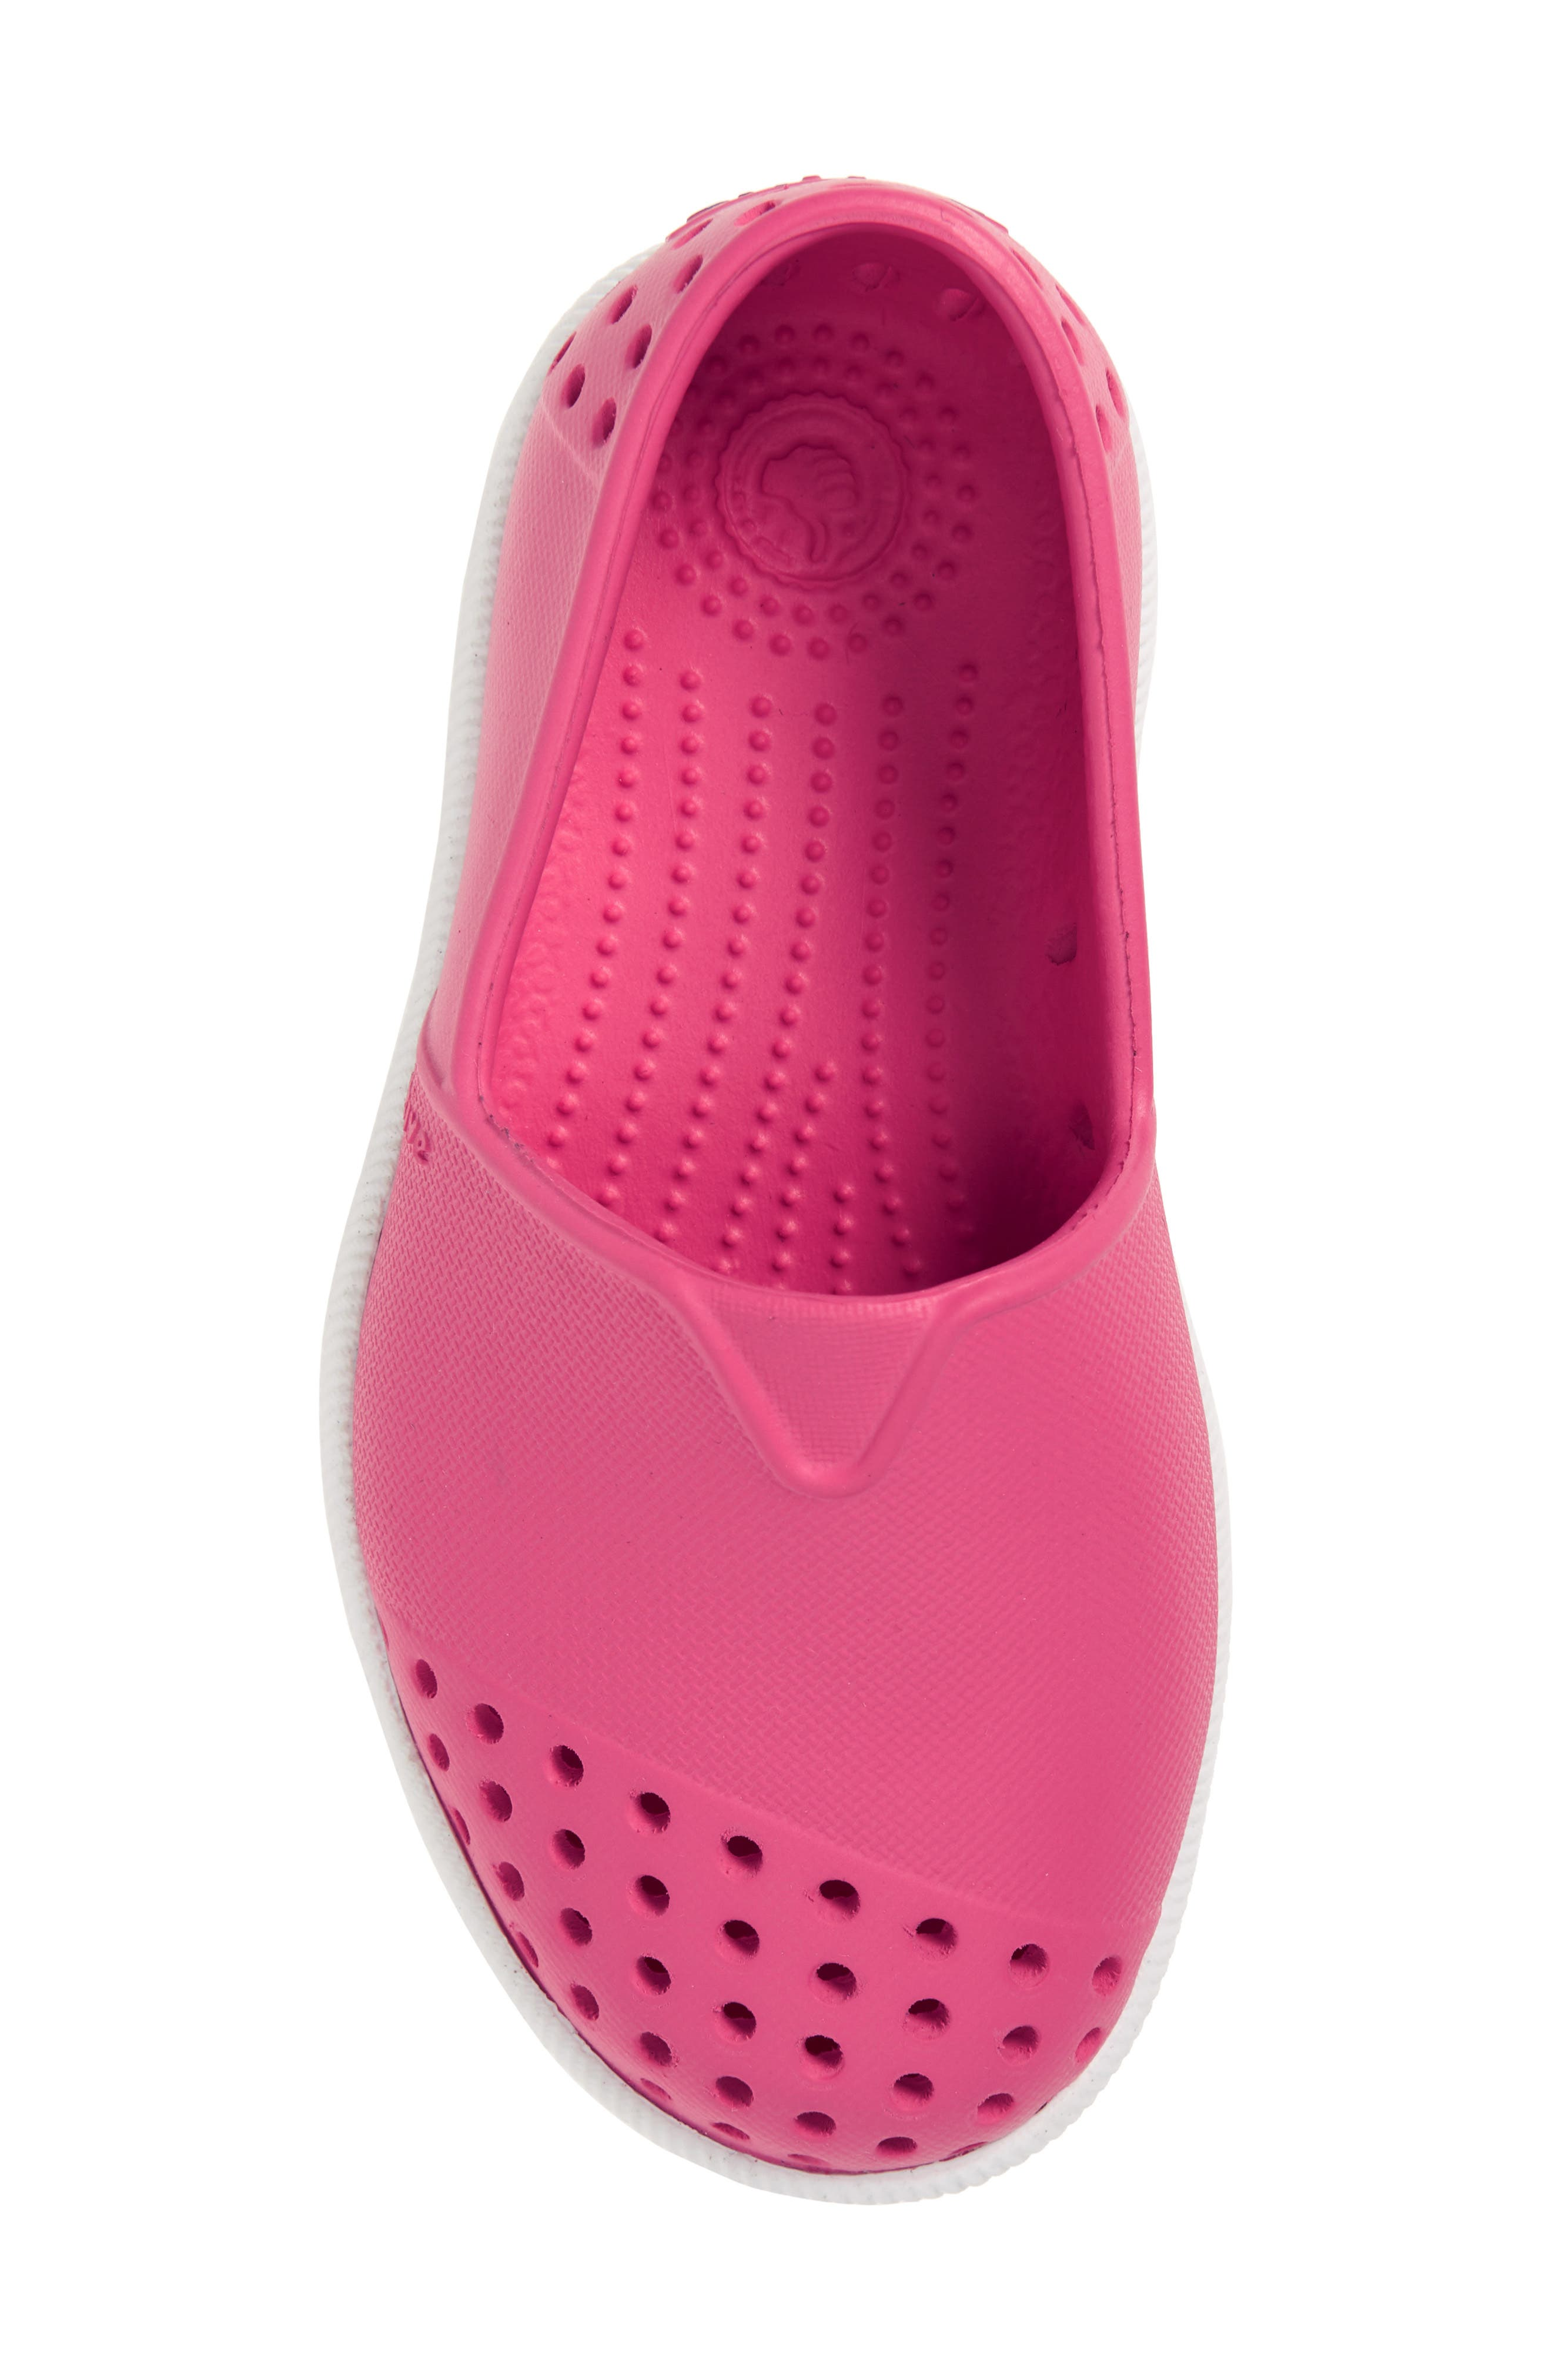 Verona Perforated Water Friendly Slip-On,                             Alternate thumbnail 5, color,                             Hollywood Pink/ Shell White